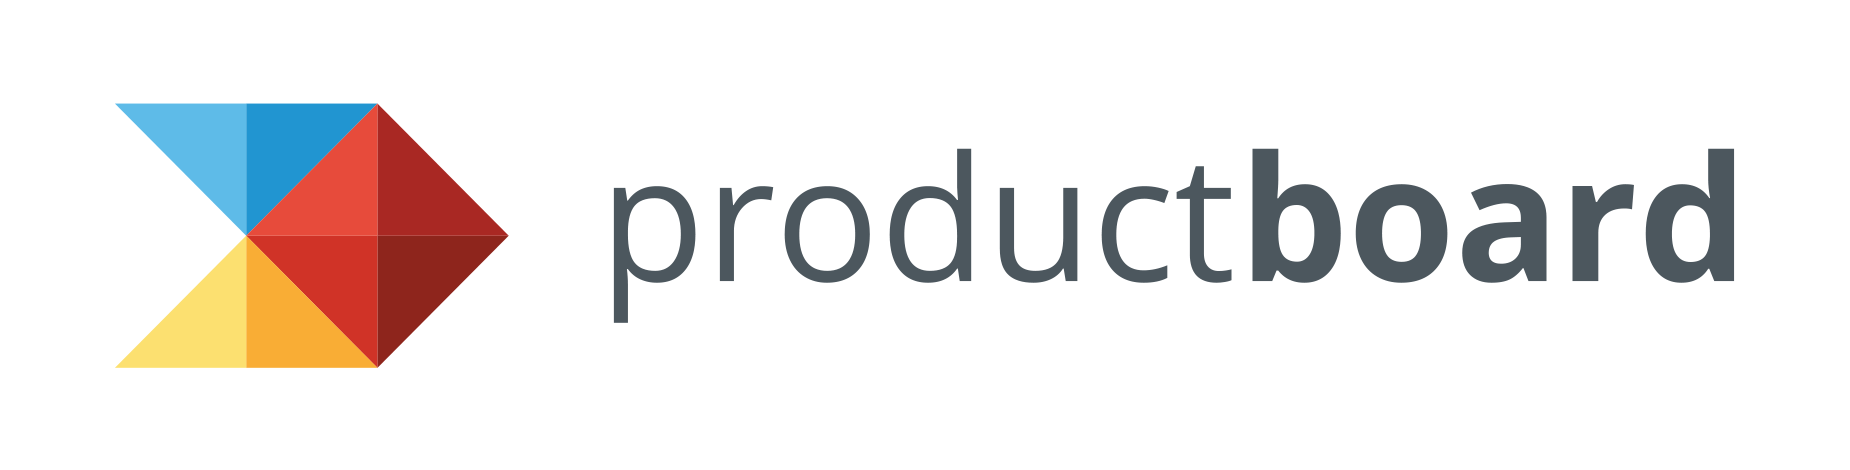 productboard logo for Pivotal Tracker integration